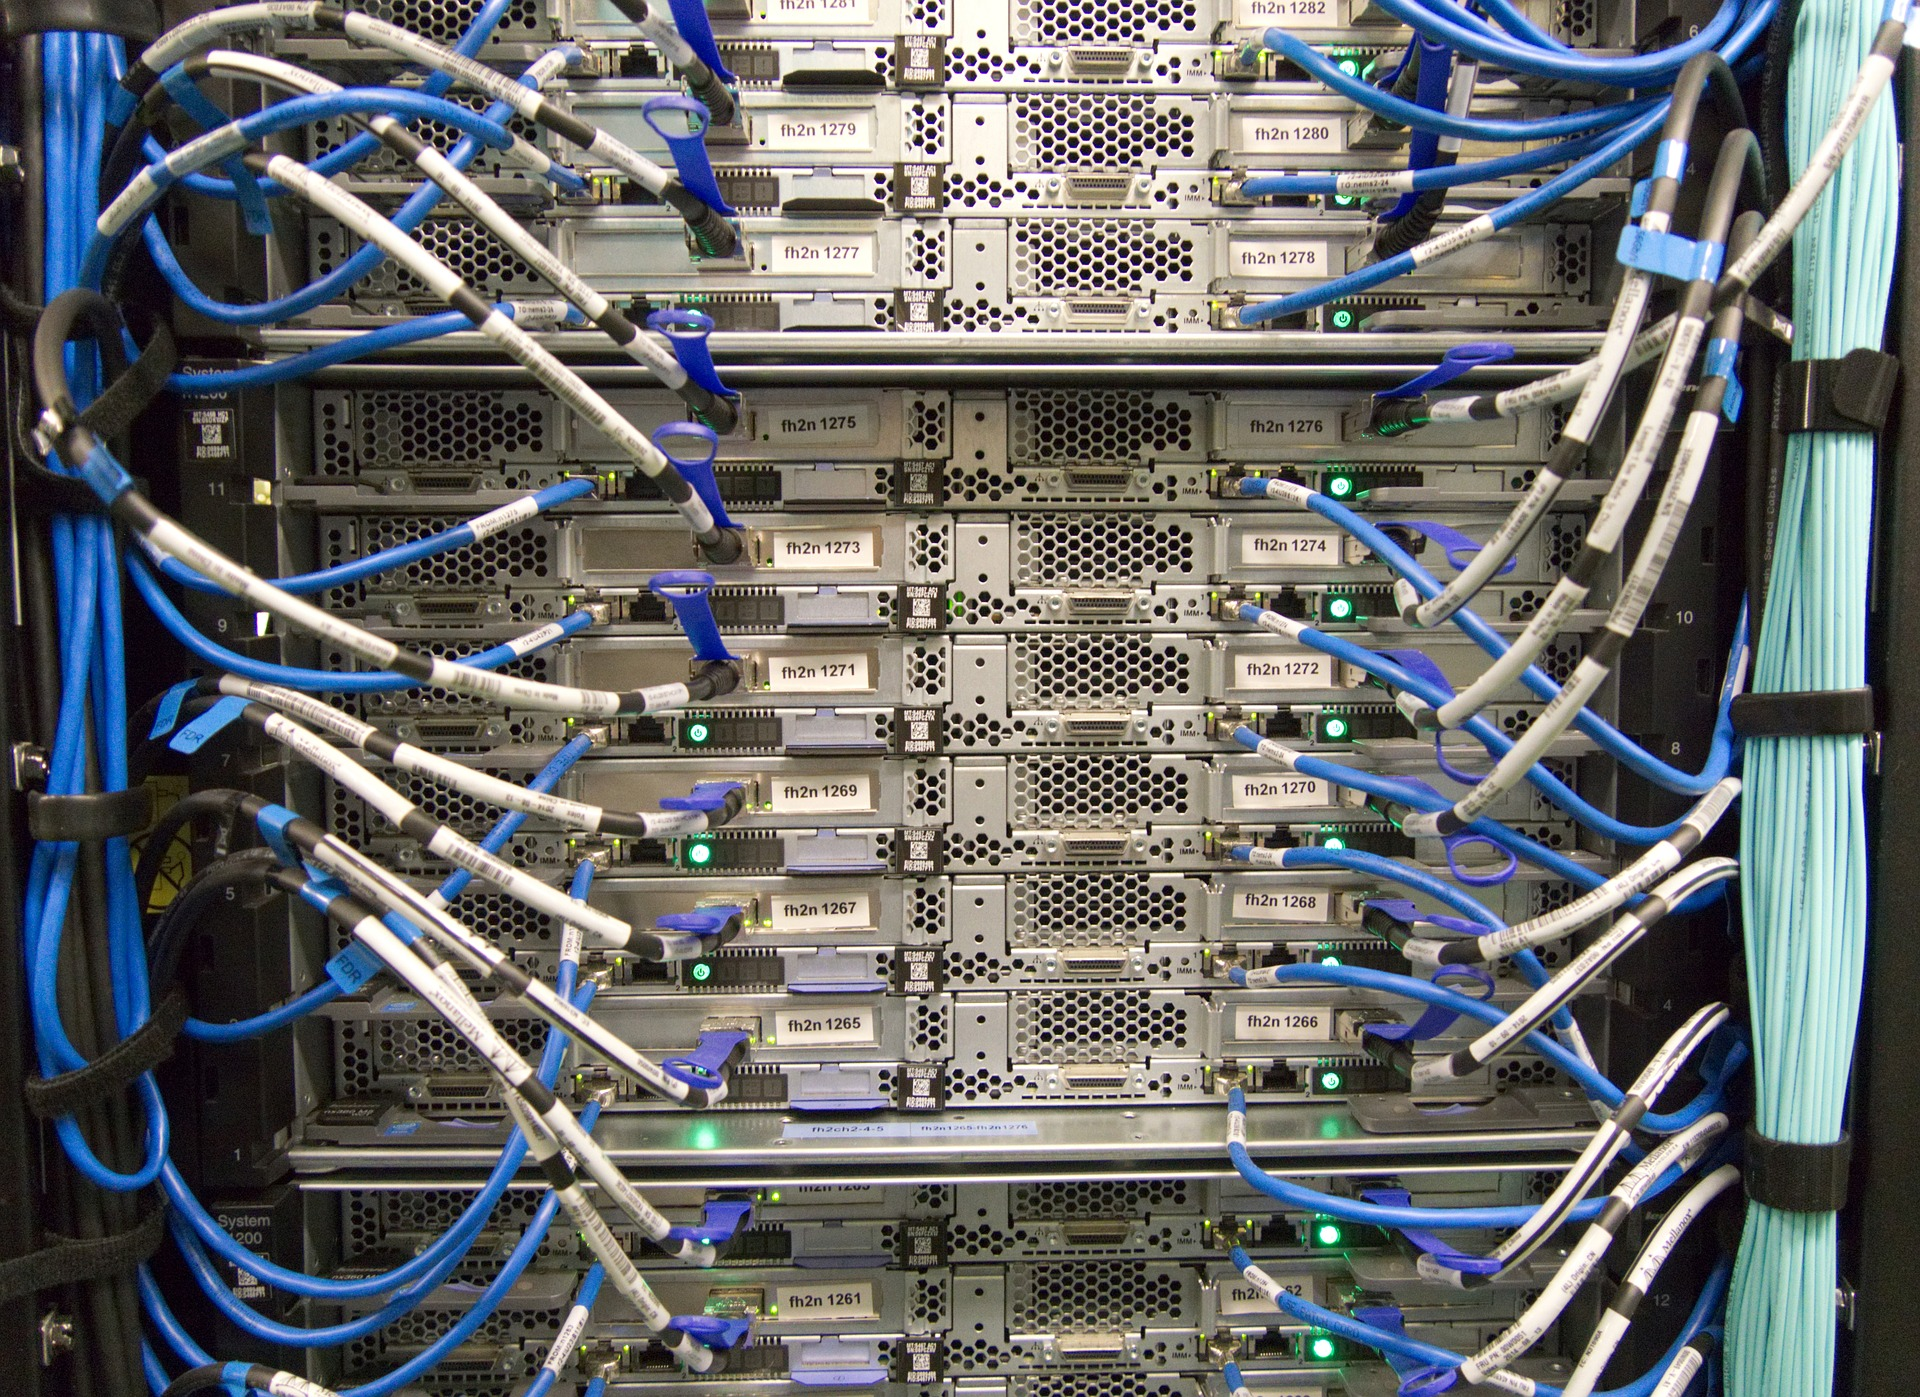 servers in a network room